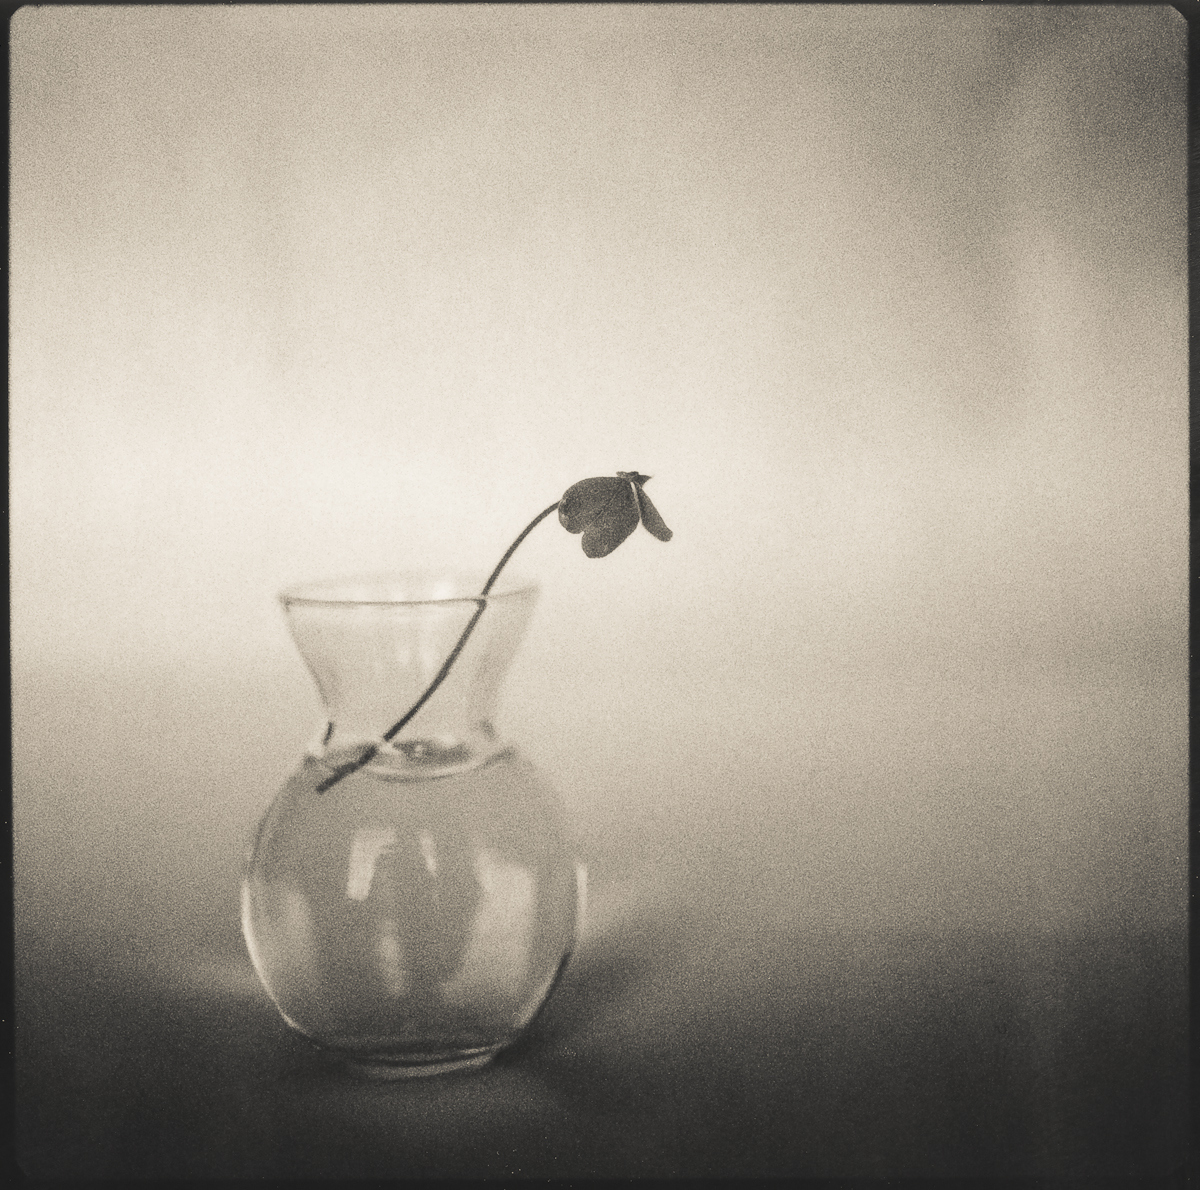 Clover-in-jar-polaroid-bw1.jpg